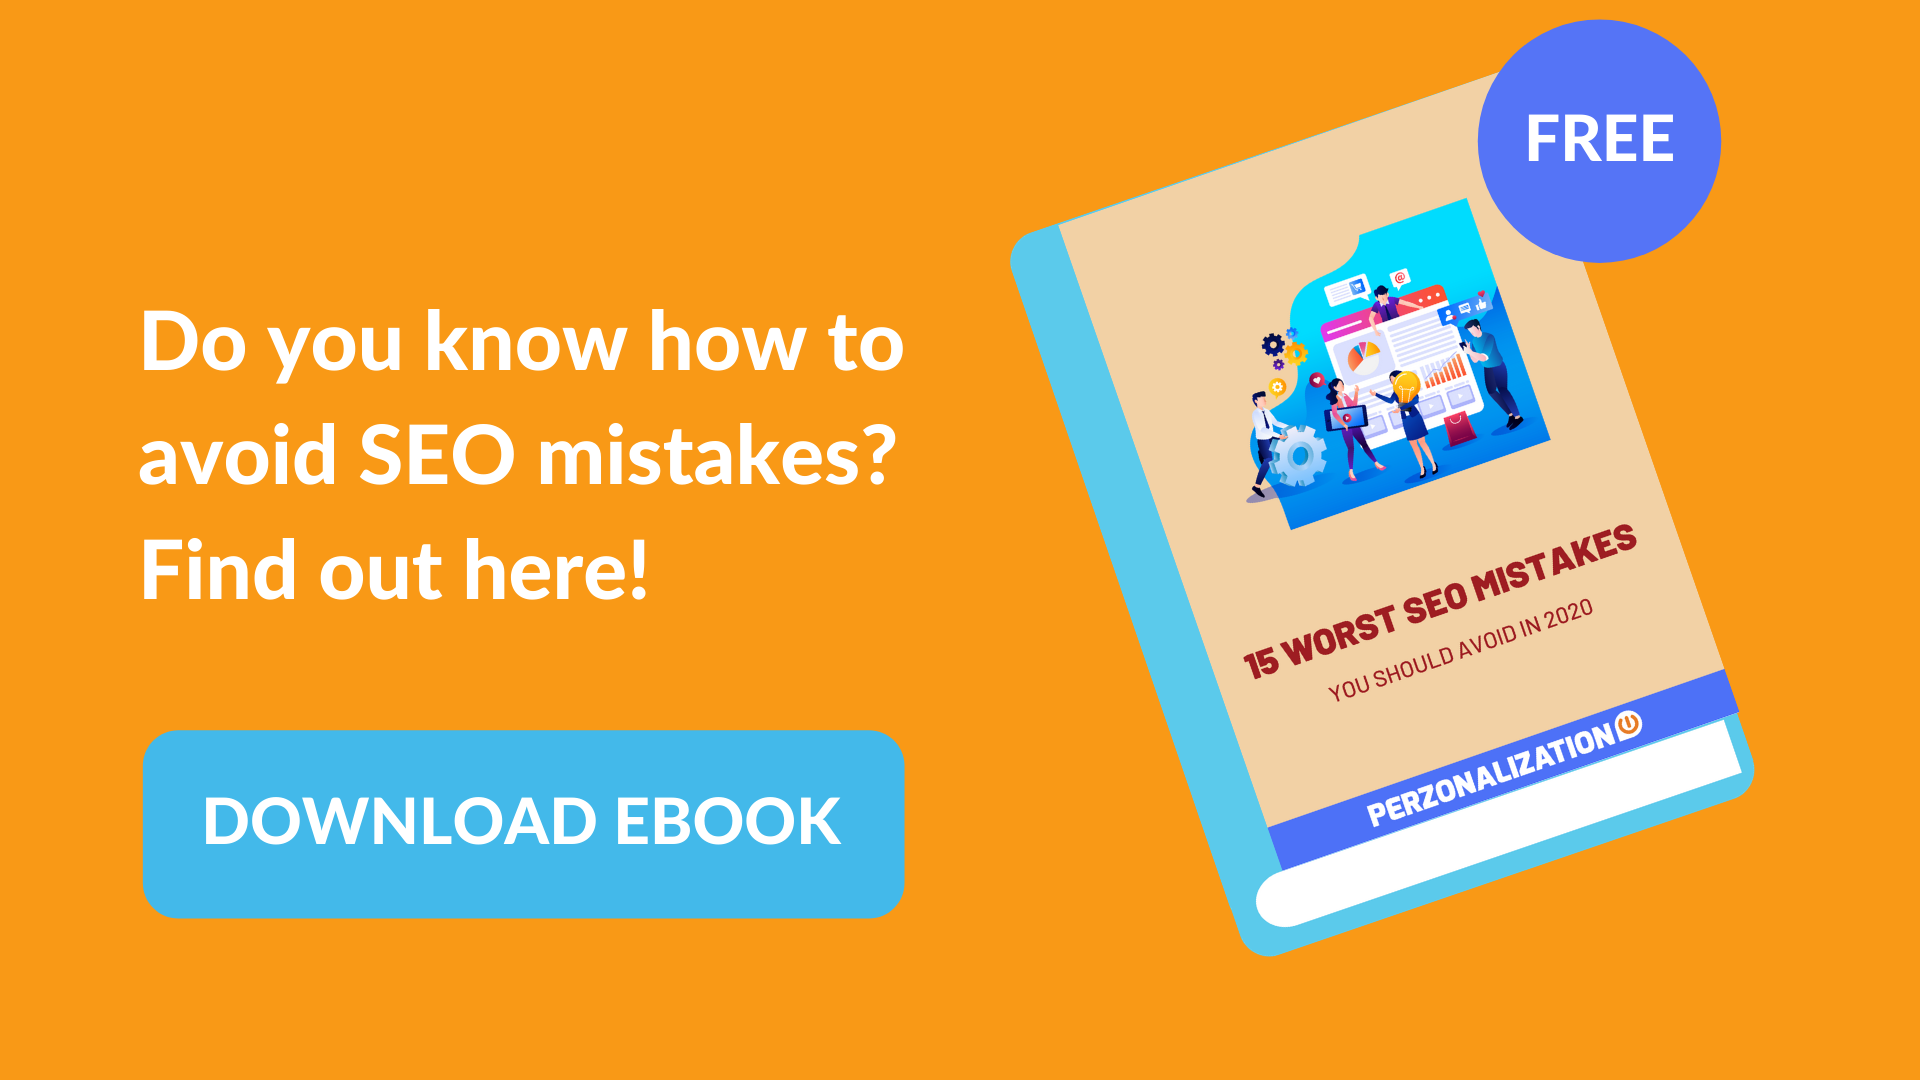 15 Worst SEO Mistakes of 2020 You Should Avoid: Popup